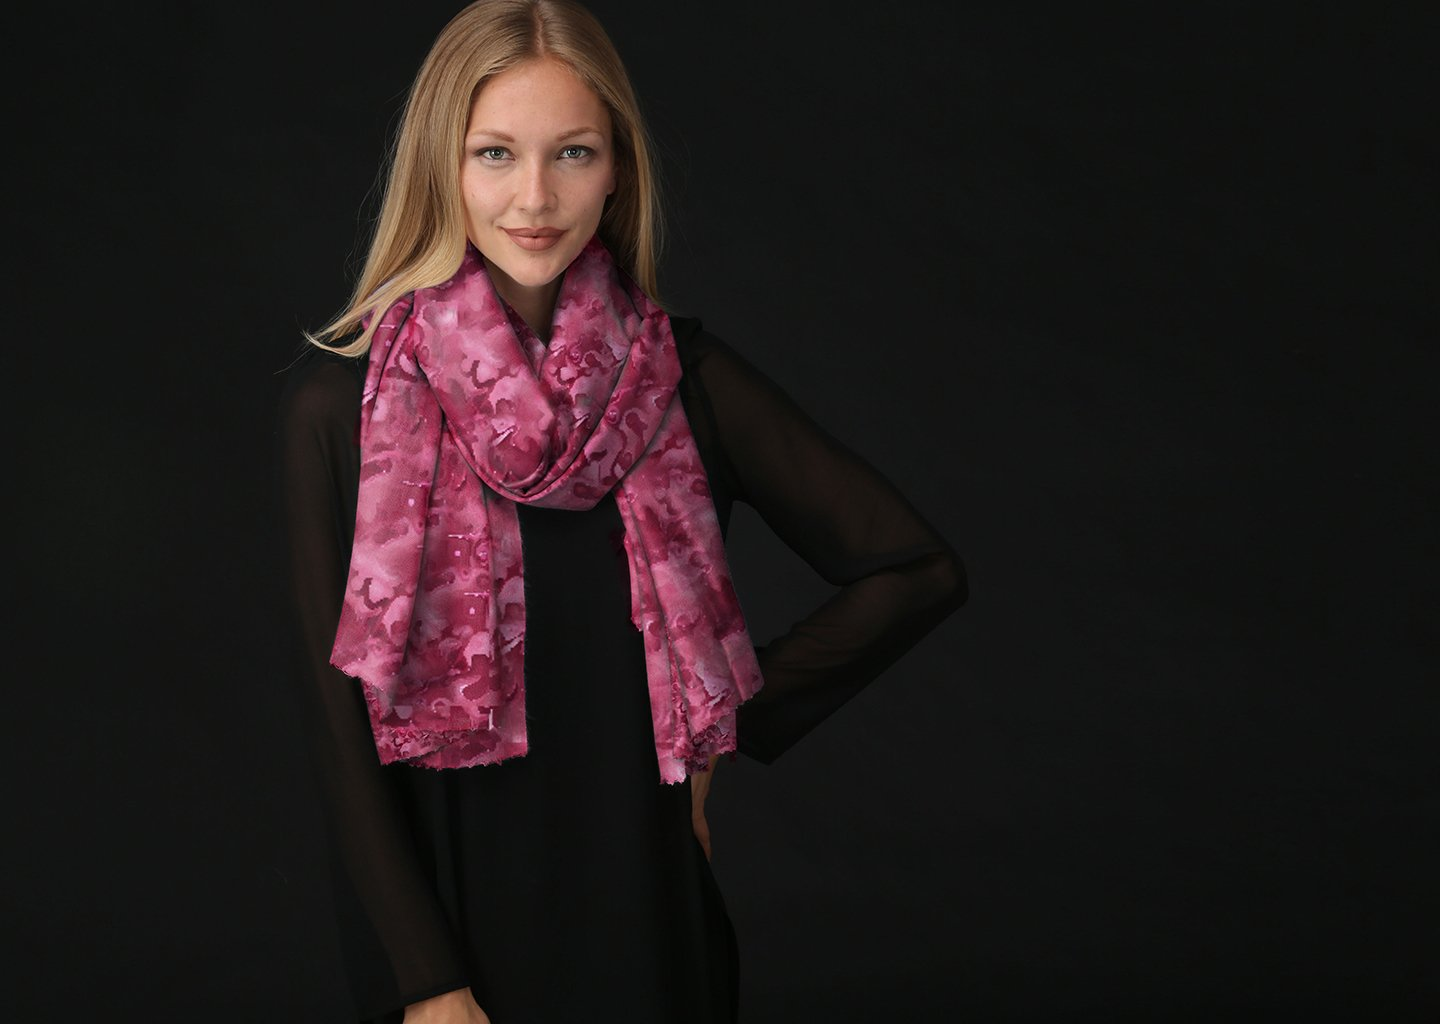 Oversized Merino Wool Scarf - Lake by VIDA VIDA S2dPy9Oe